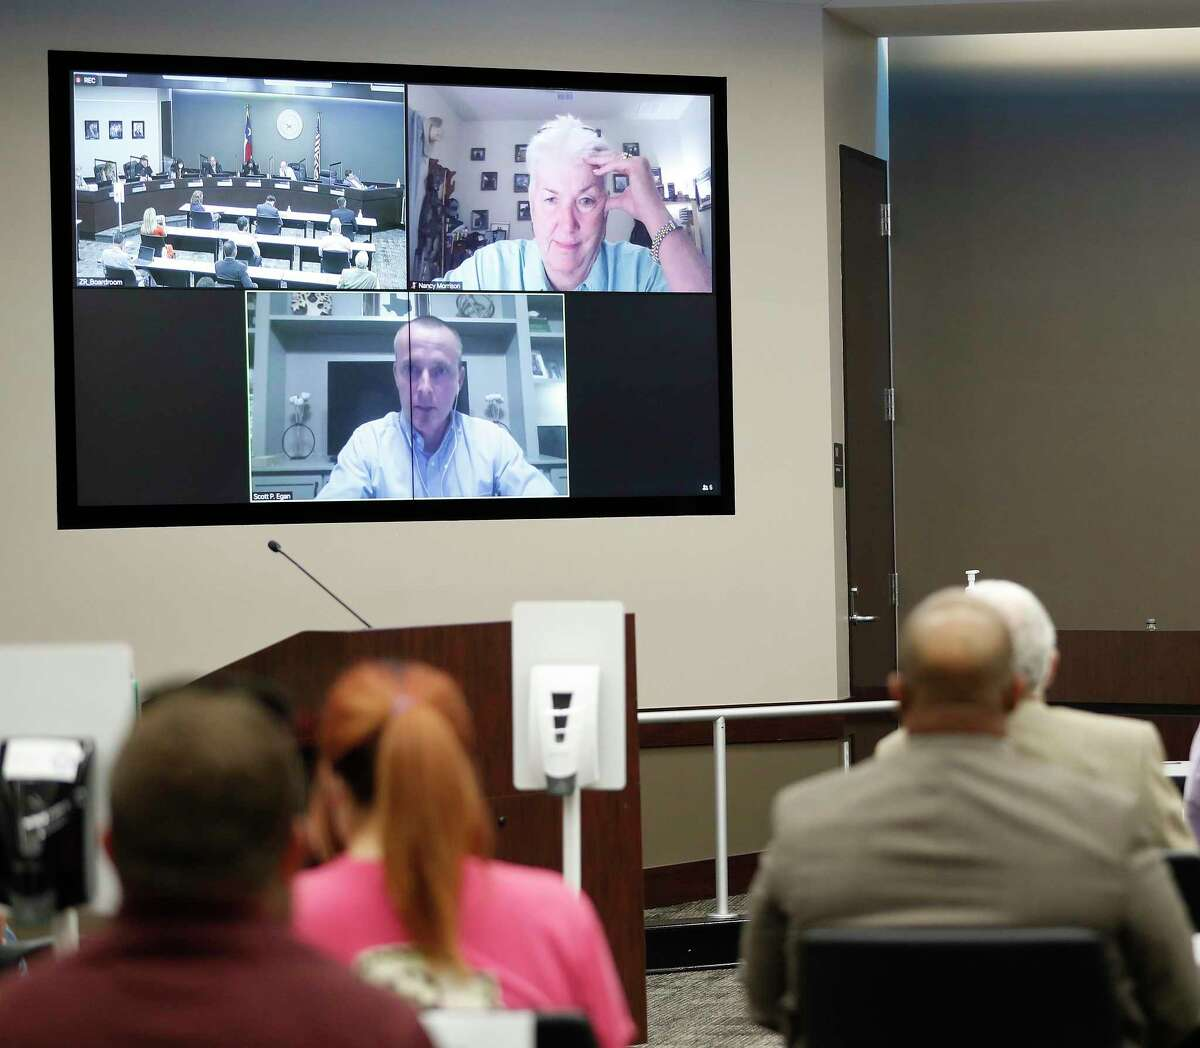 Scott Egan speaks to board members, including Nancy Morrison via zoom during the Humble ISD board meeting to discuss the reopening of schools, Monday, August 3, 2020, in Humble.